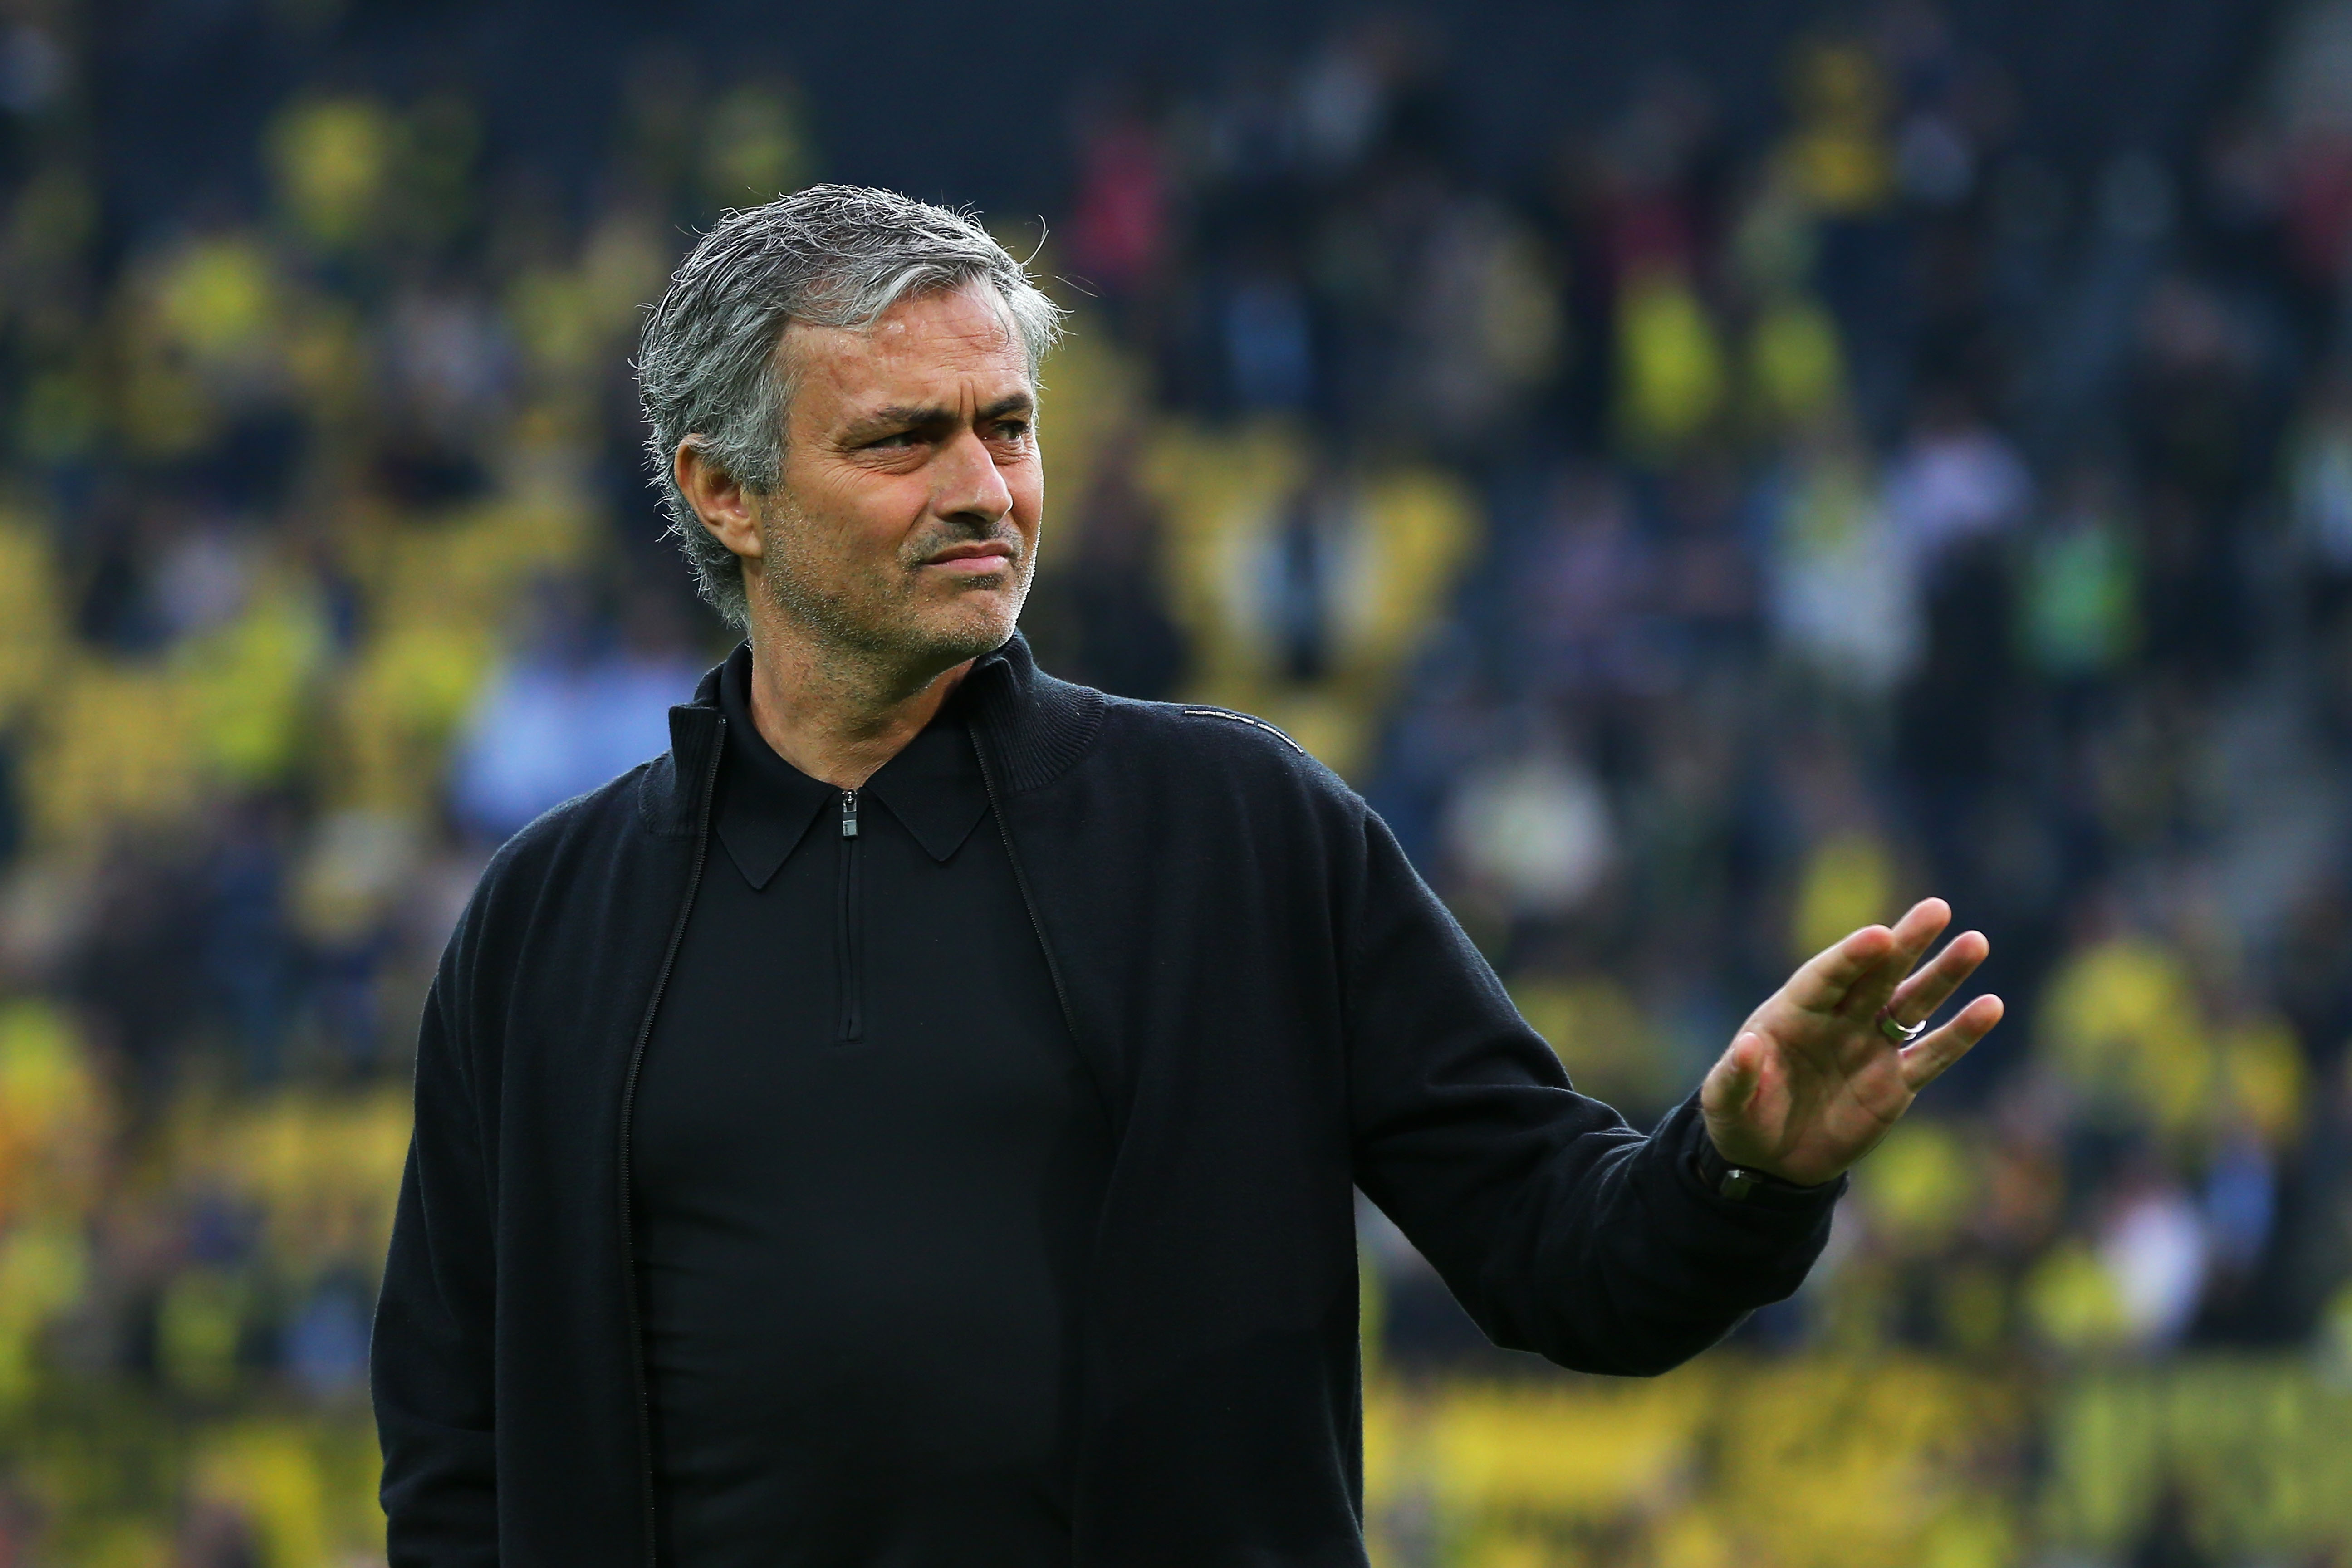 Why Jose Mourinho will (probably) go to Real Madrid and not Manchester United